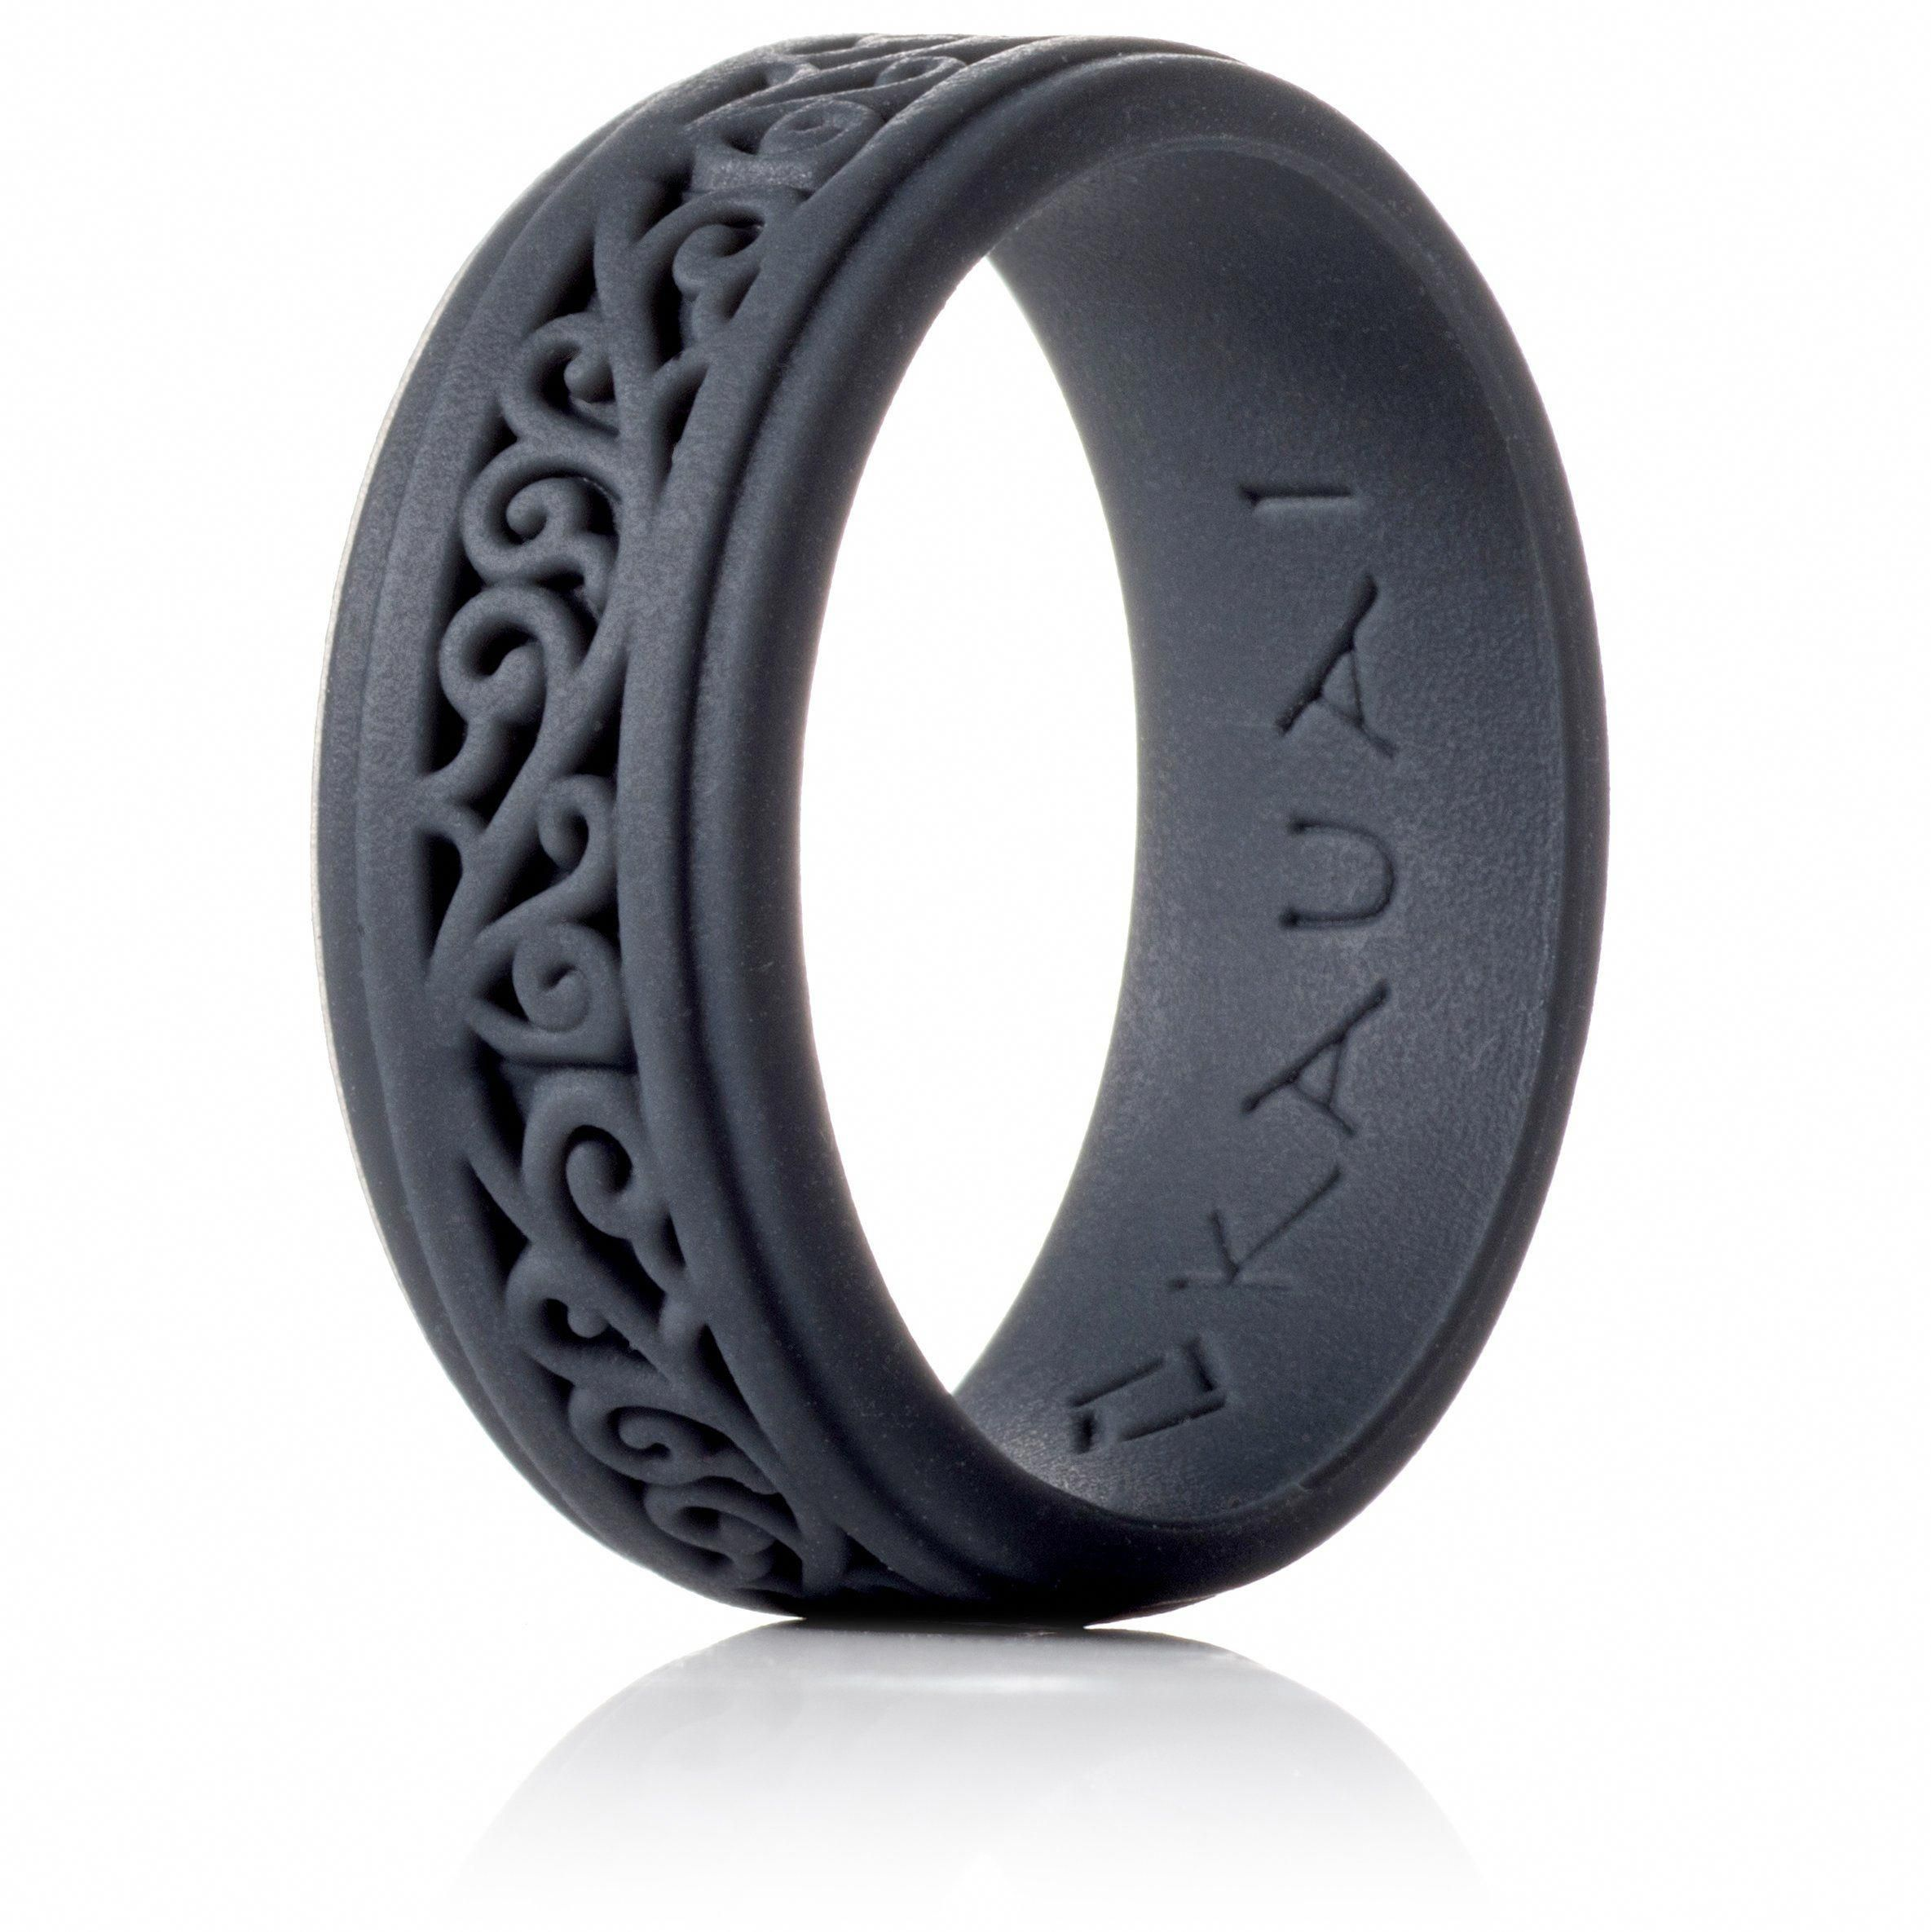 I Like This Type Of Ring Ovalengagementrings Wedding Rings Simple Silicone Wedding Rings Luxury Wedding Venues